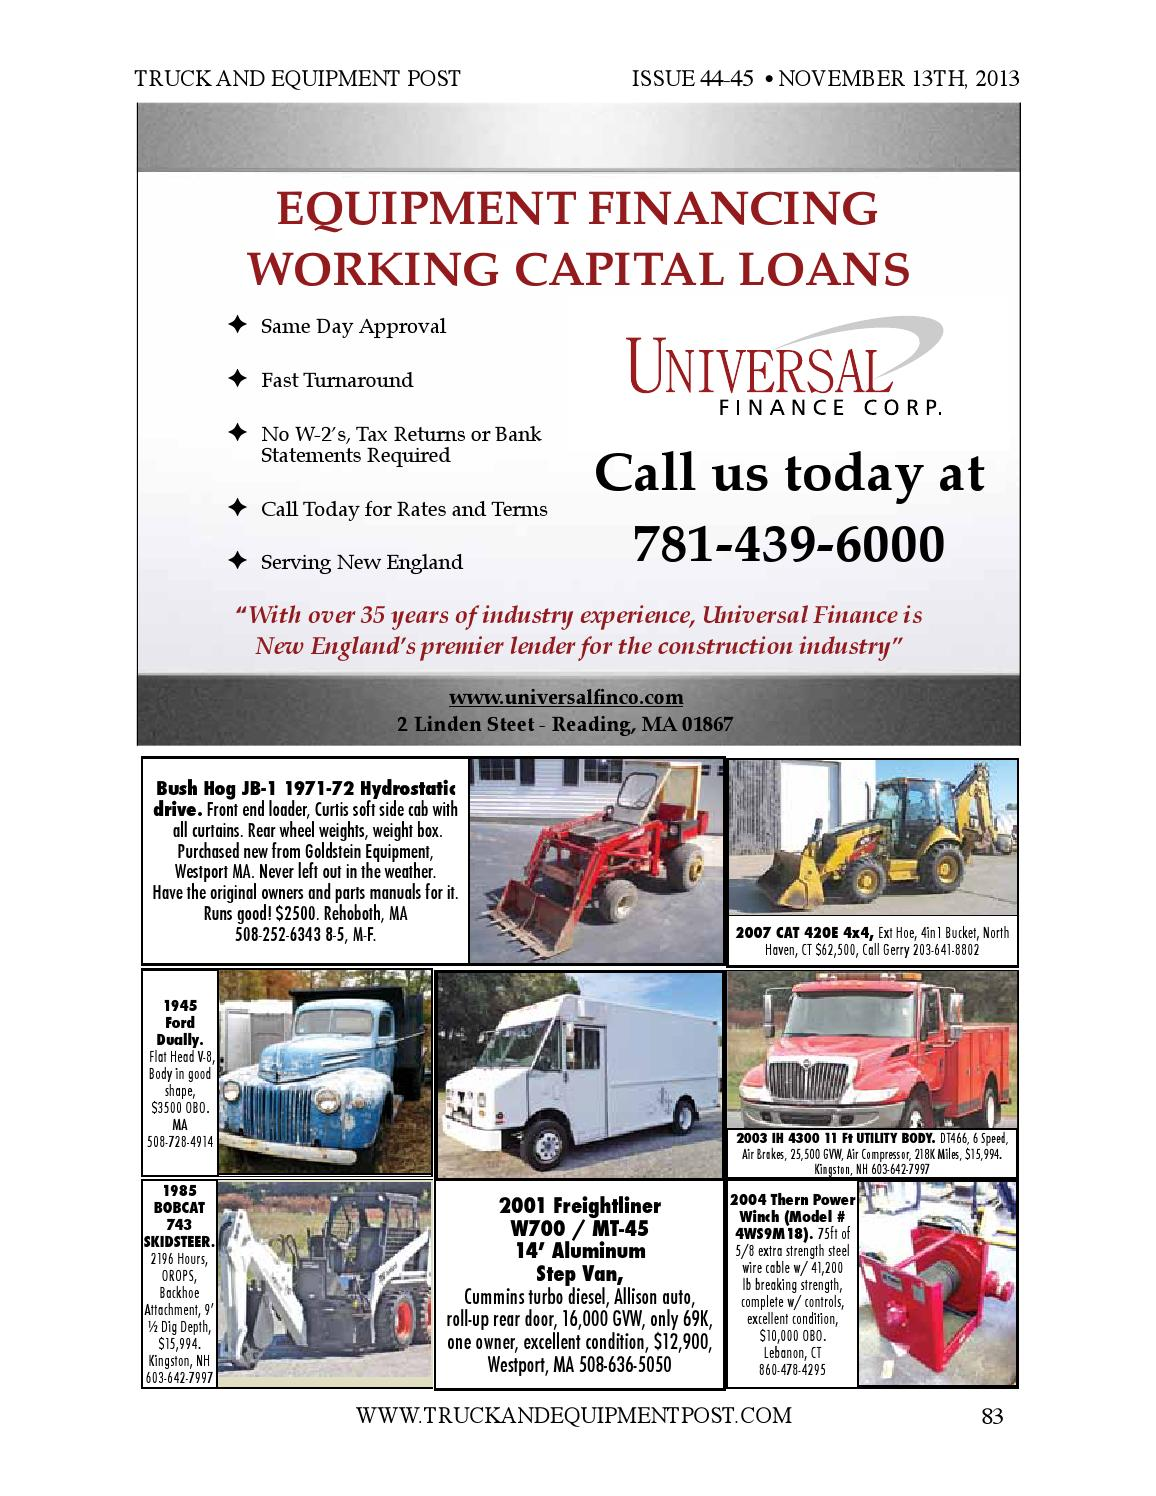 Truck equipment post 44 45 2013 by 1ClickAway - issuu